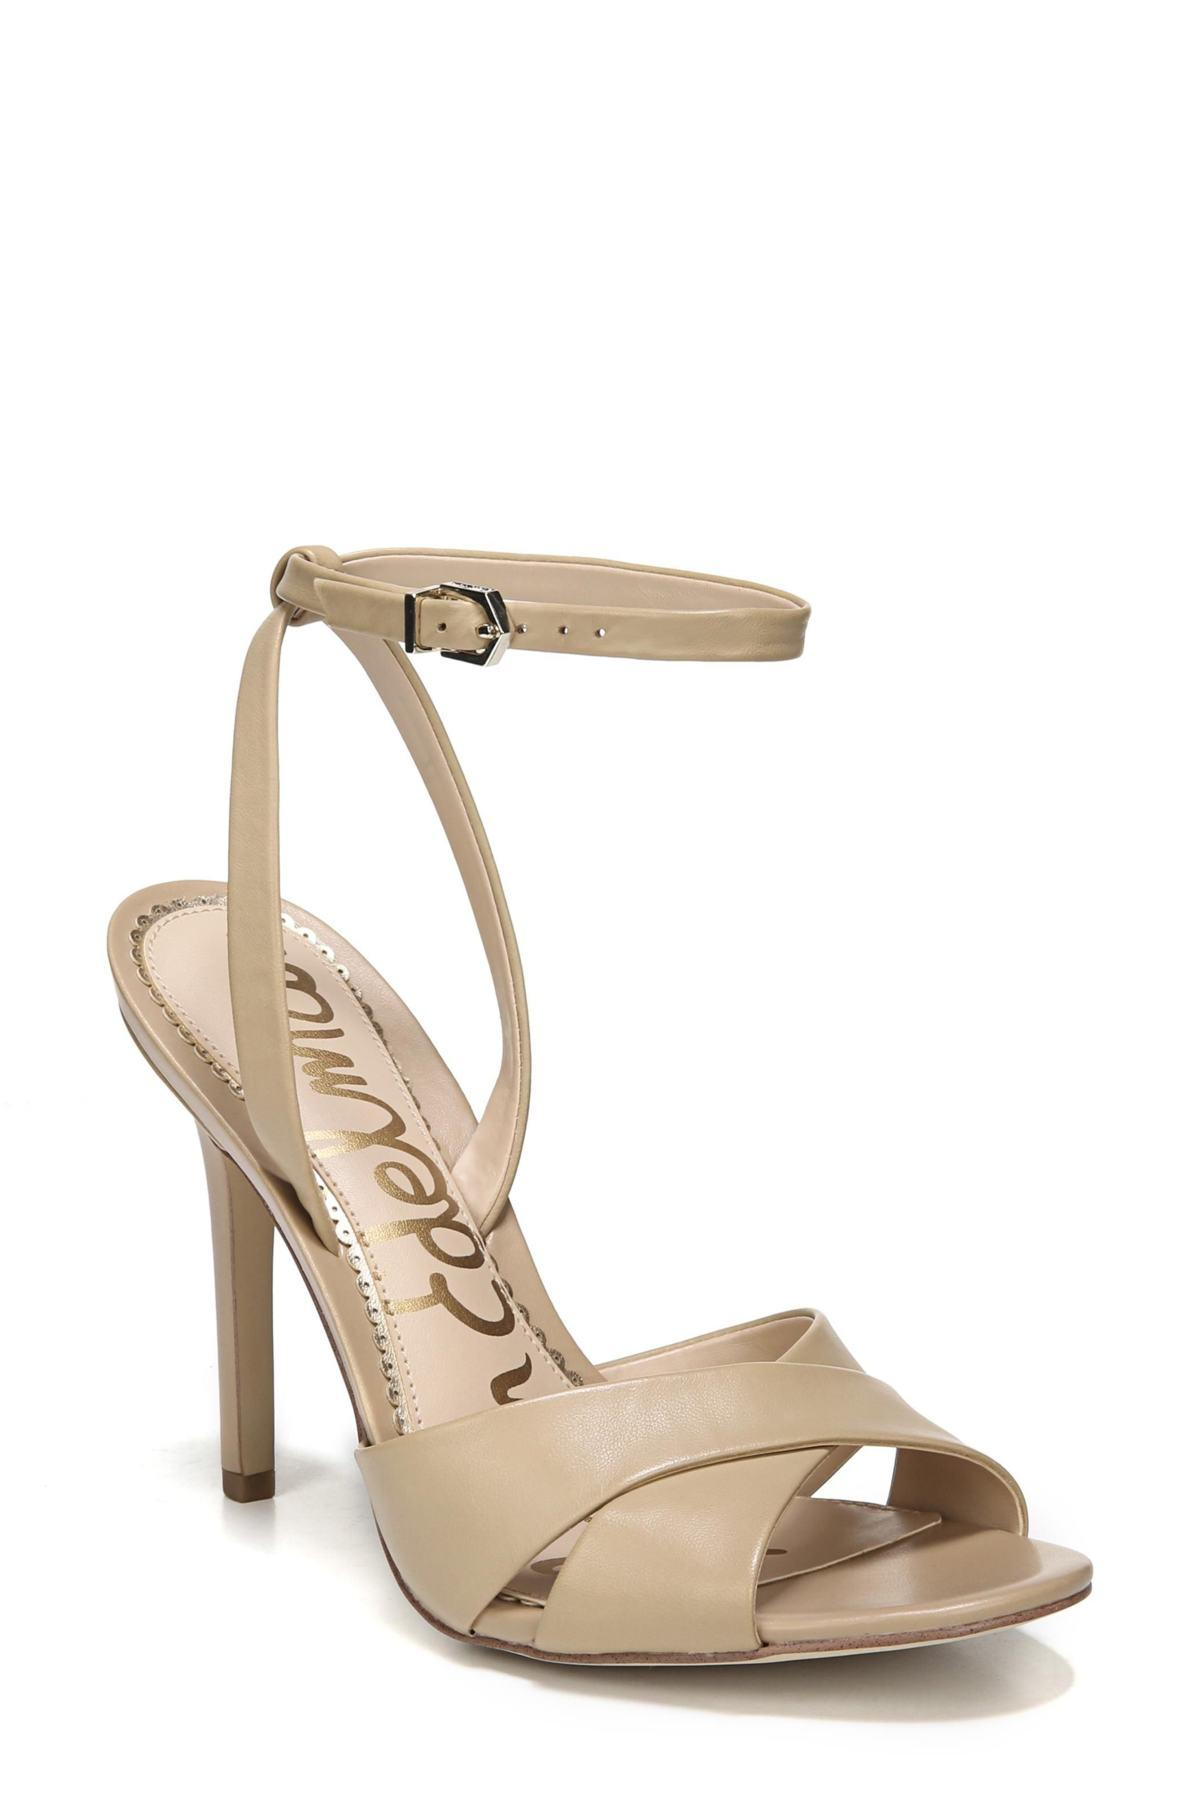 4d134bdace6 Lyst - Sam Edelman Aly Ankle Strap Sandal (women) in Natural